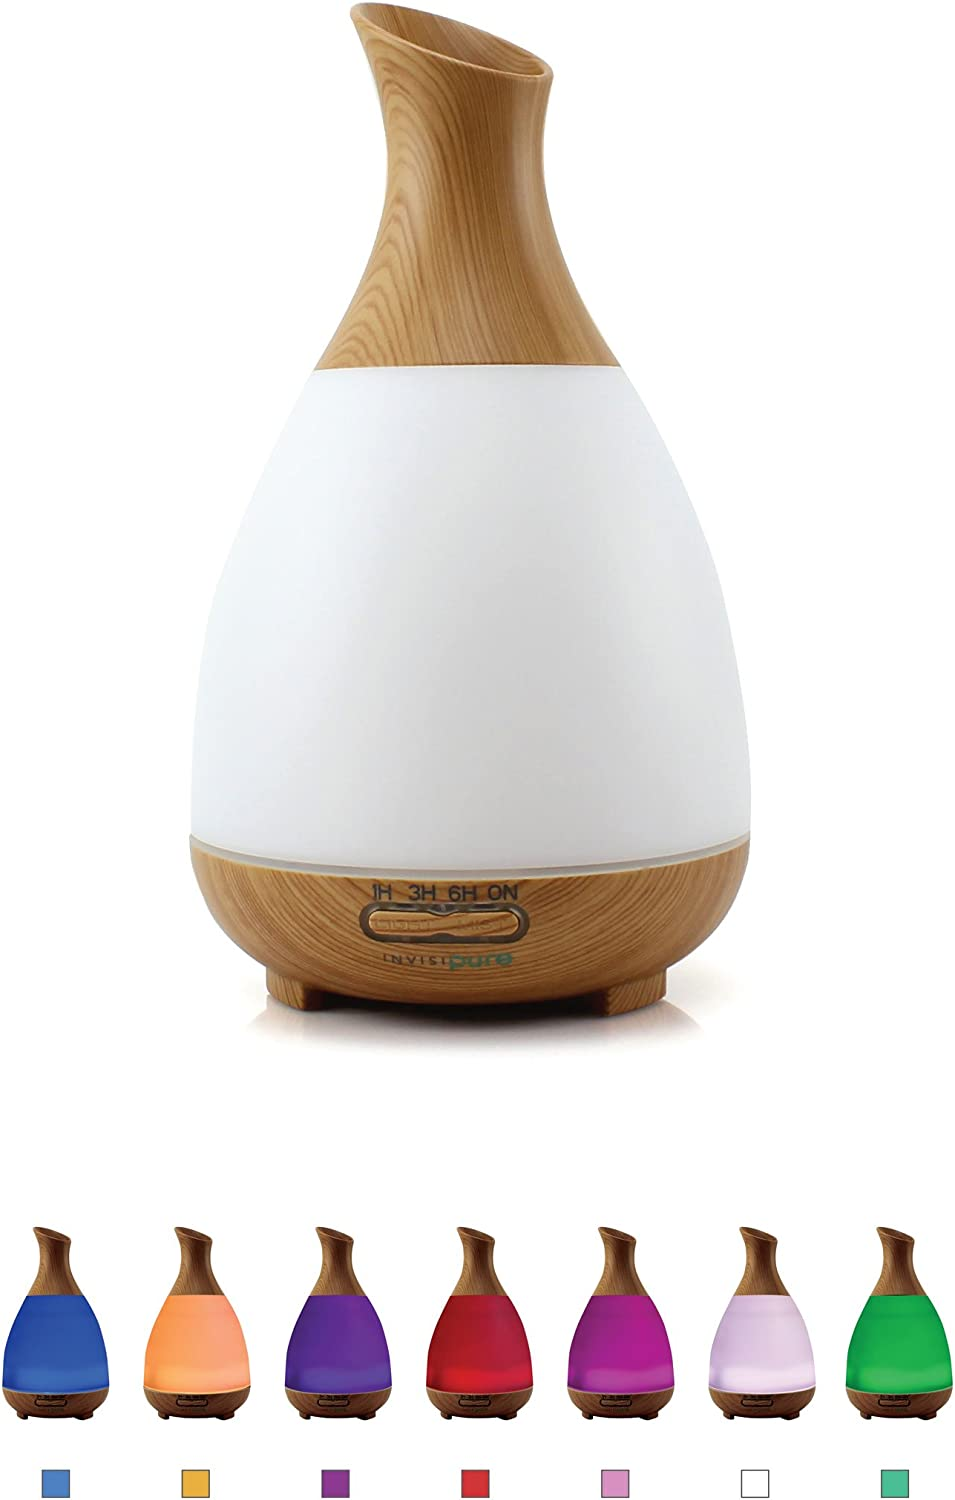 InvisiPure Alta Cool Mist Humidifier Aromatherapy Diffuser, Essential Oil Diffuser, BPA Free – 200ml – Simple to Use Humidifier for Bedrooms, Travel, Portable and Small in Size